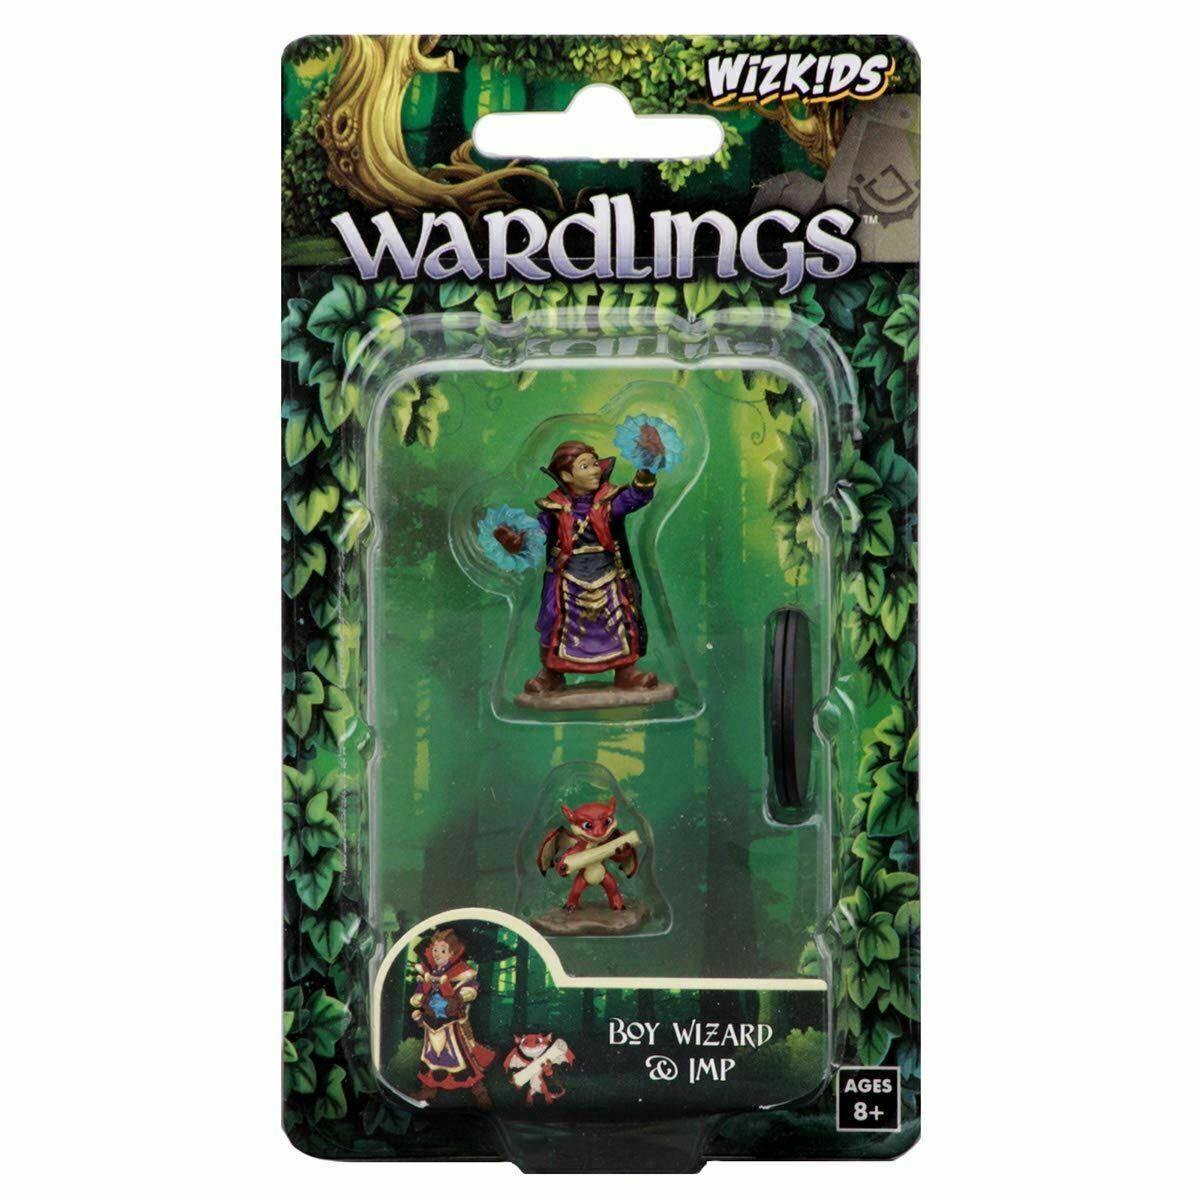 Wizkids Wardlings Painted Fantasy Miniatures - Boy Wizard and Imp